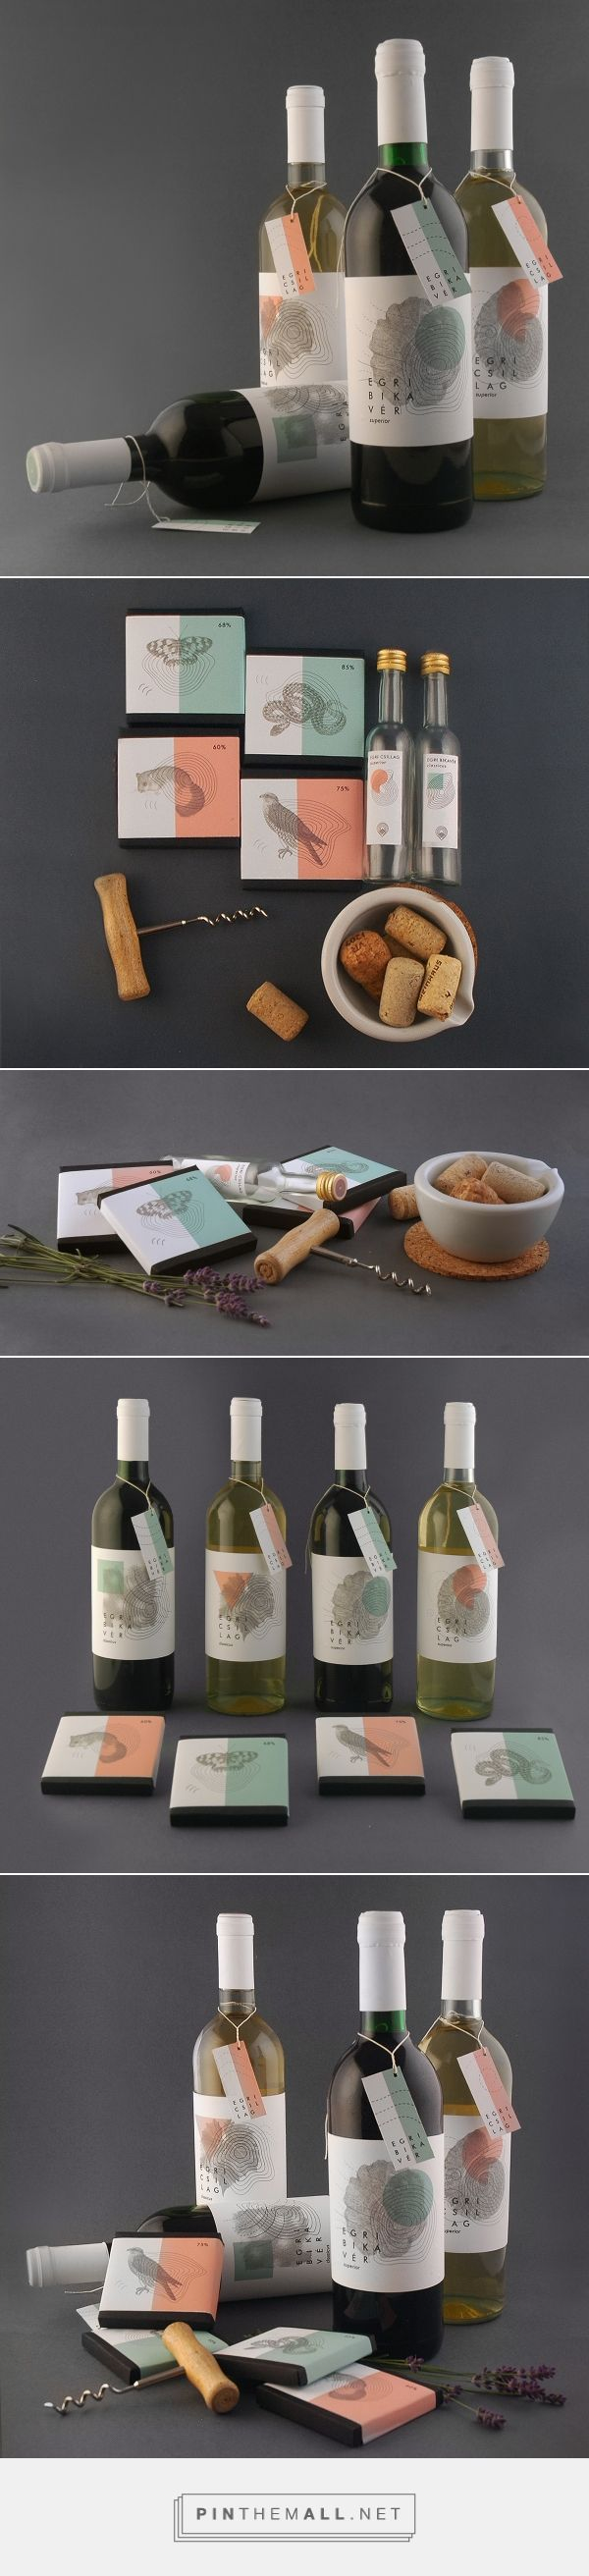 Egri Bikaver Wine Label and Packaging by Ancsa Borbas (Student Project) | Fivestar Branding Agency – Design and Branding Agency & Curated Inspiration Gallery